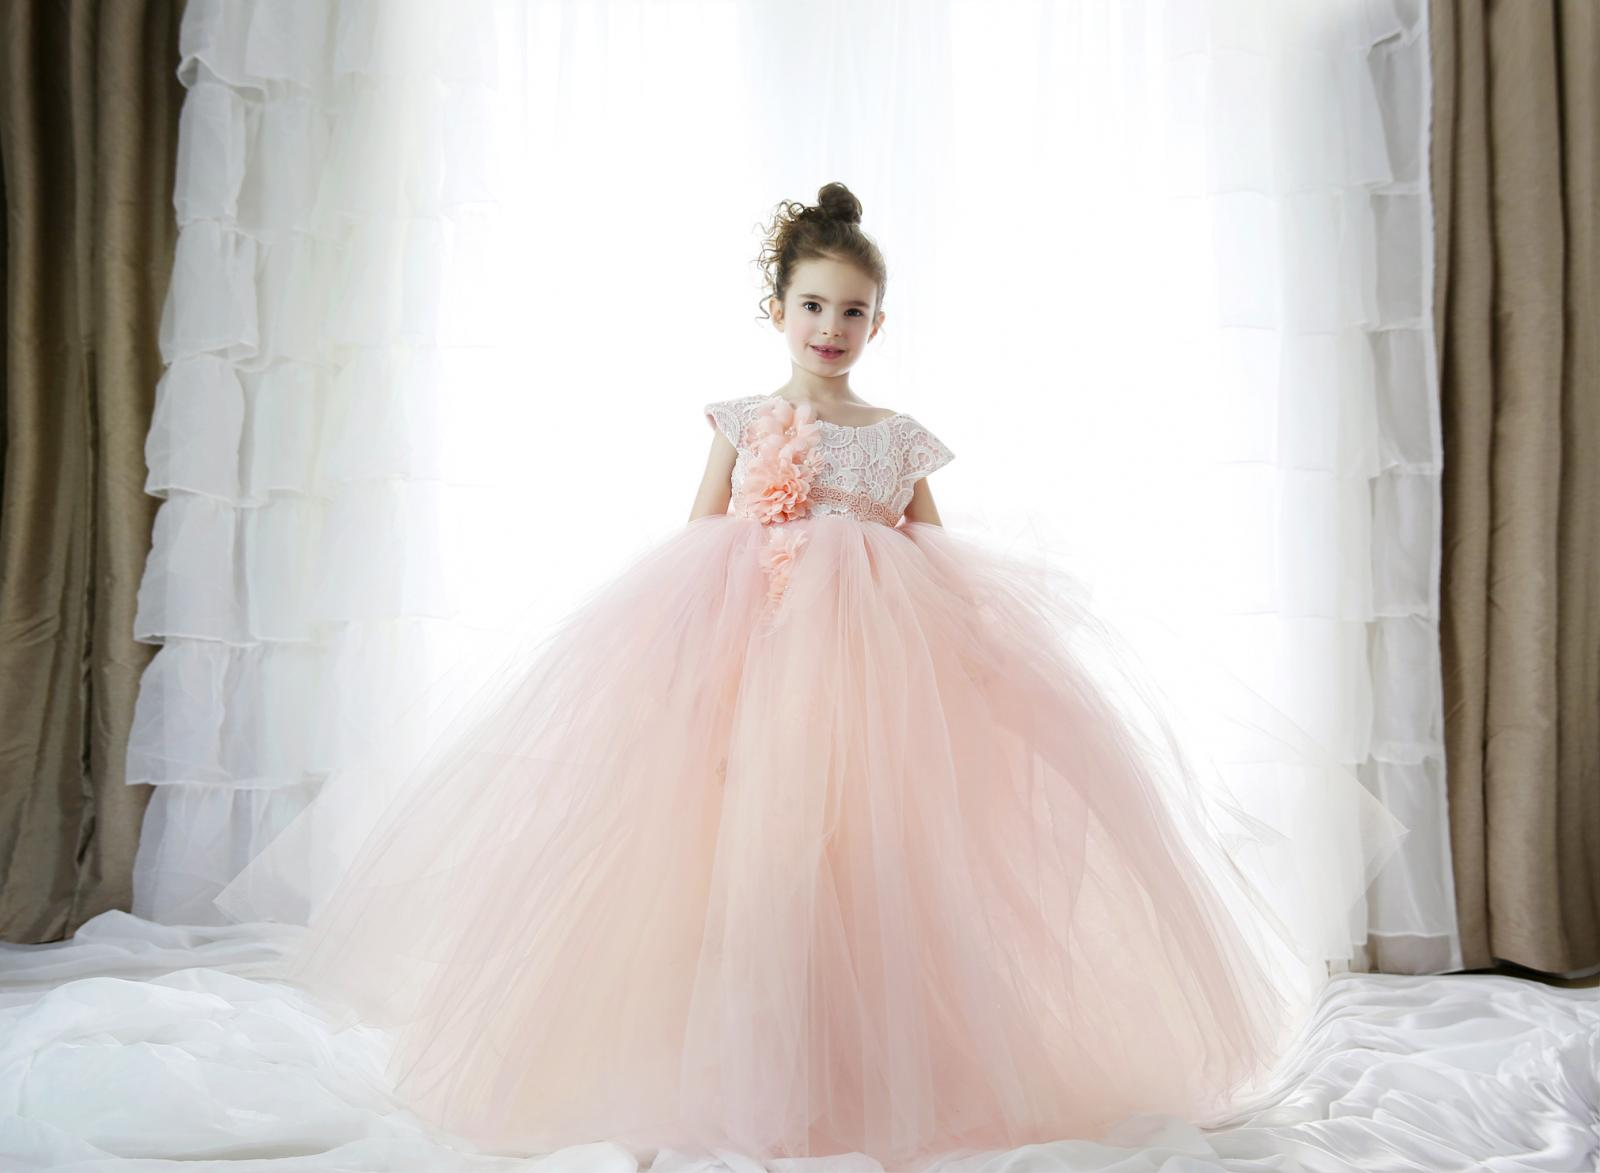 Beautiful little girl wearing a princess gown and standing in front of large window